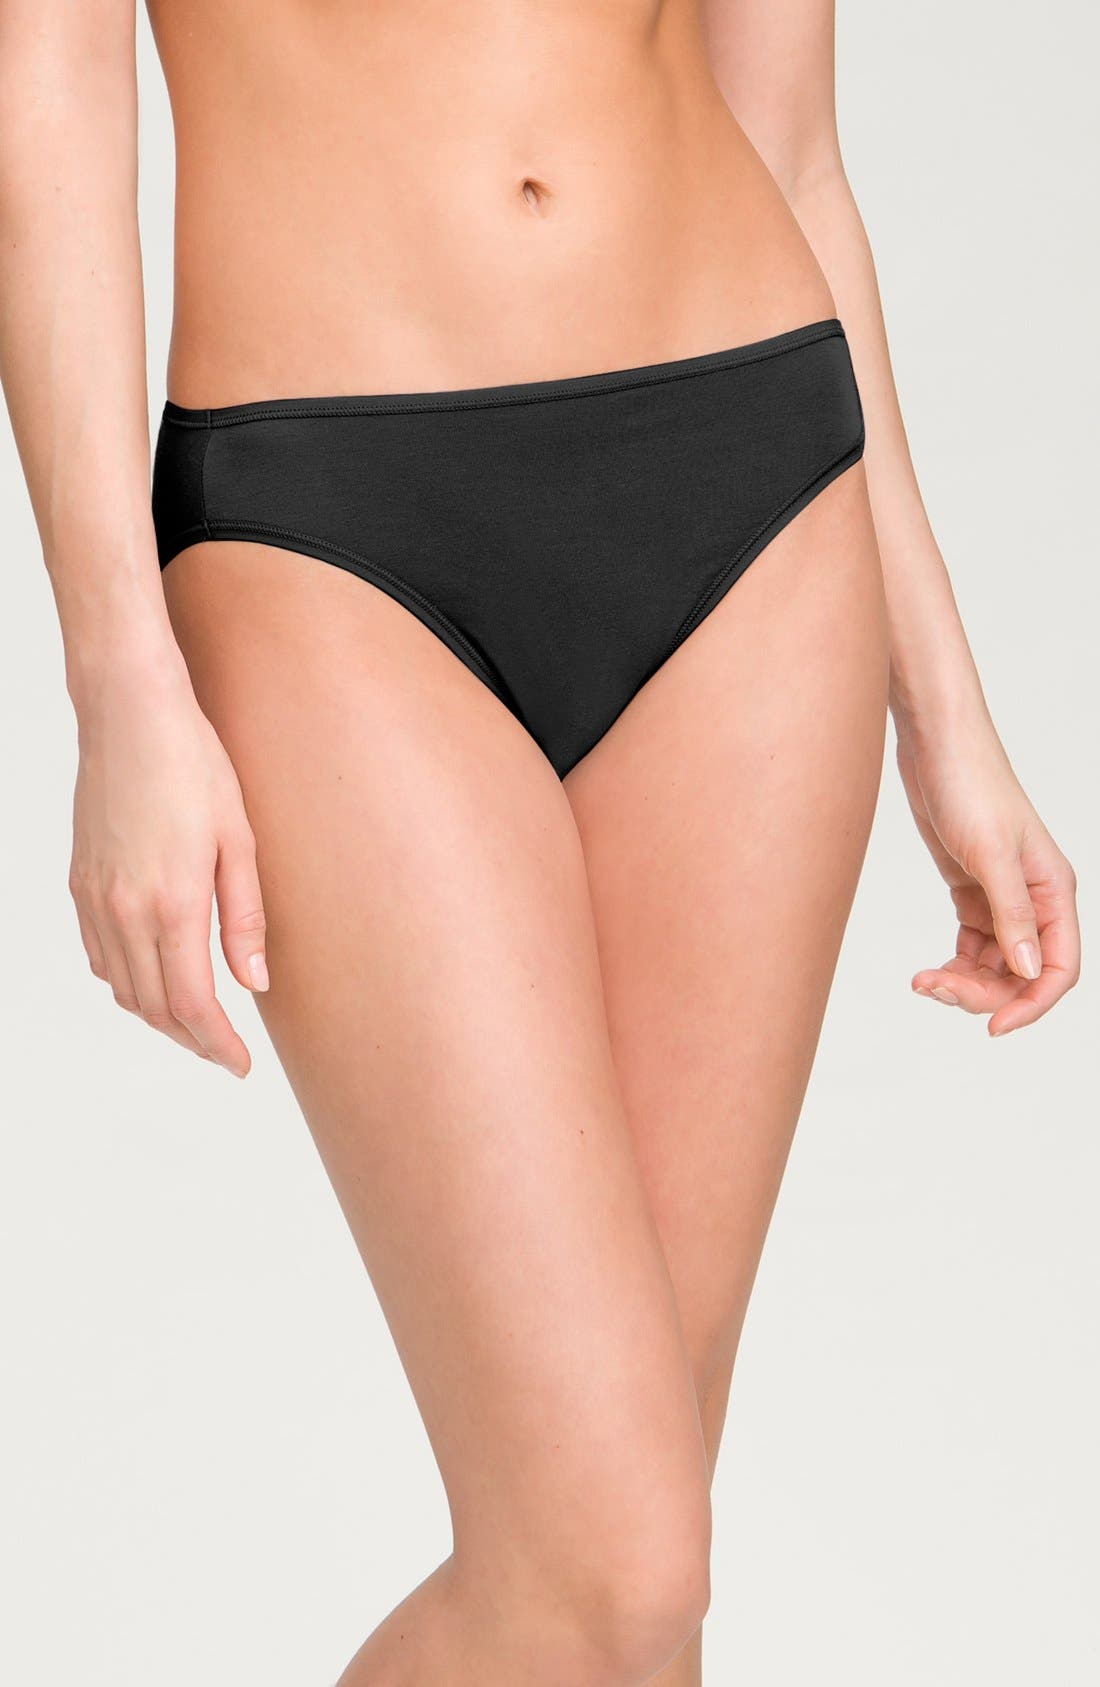 Main Image - Shimera 'Comfort' Stretch Cotton High Cut Briefs